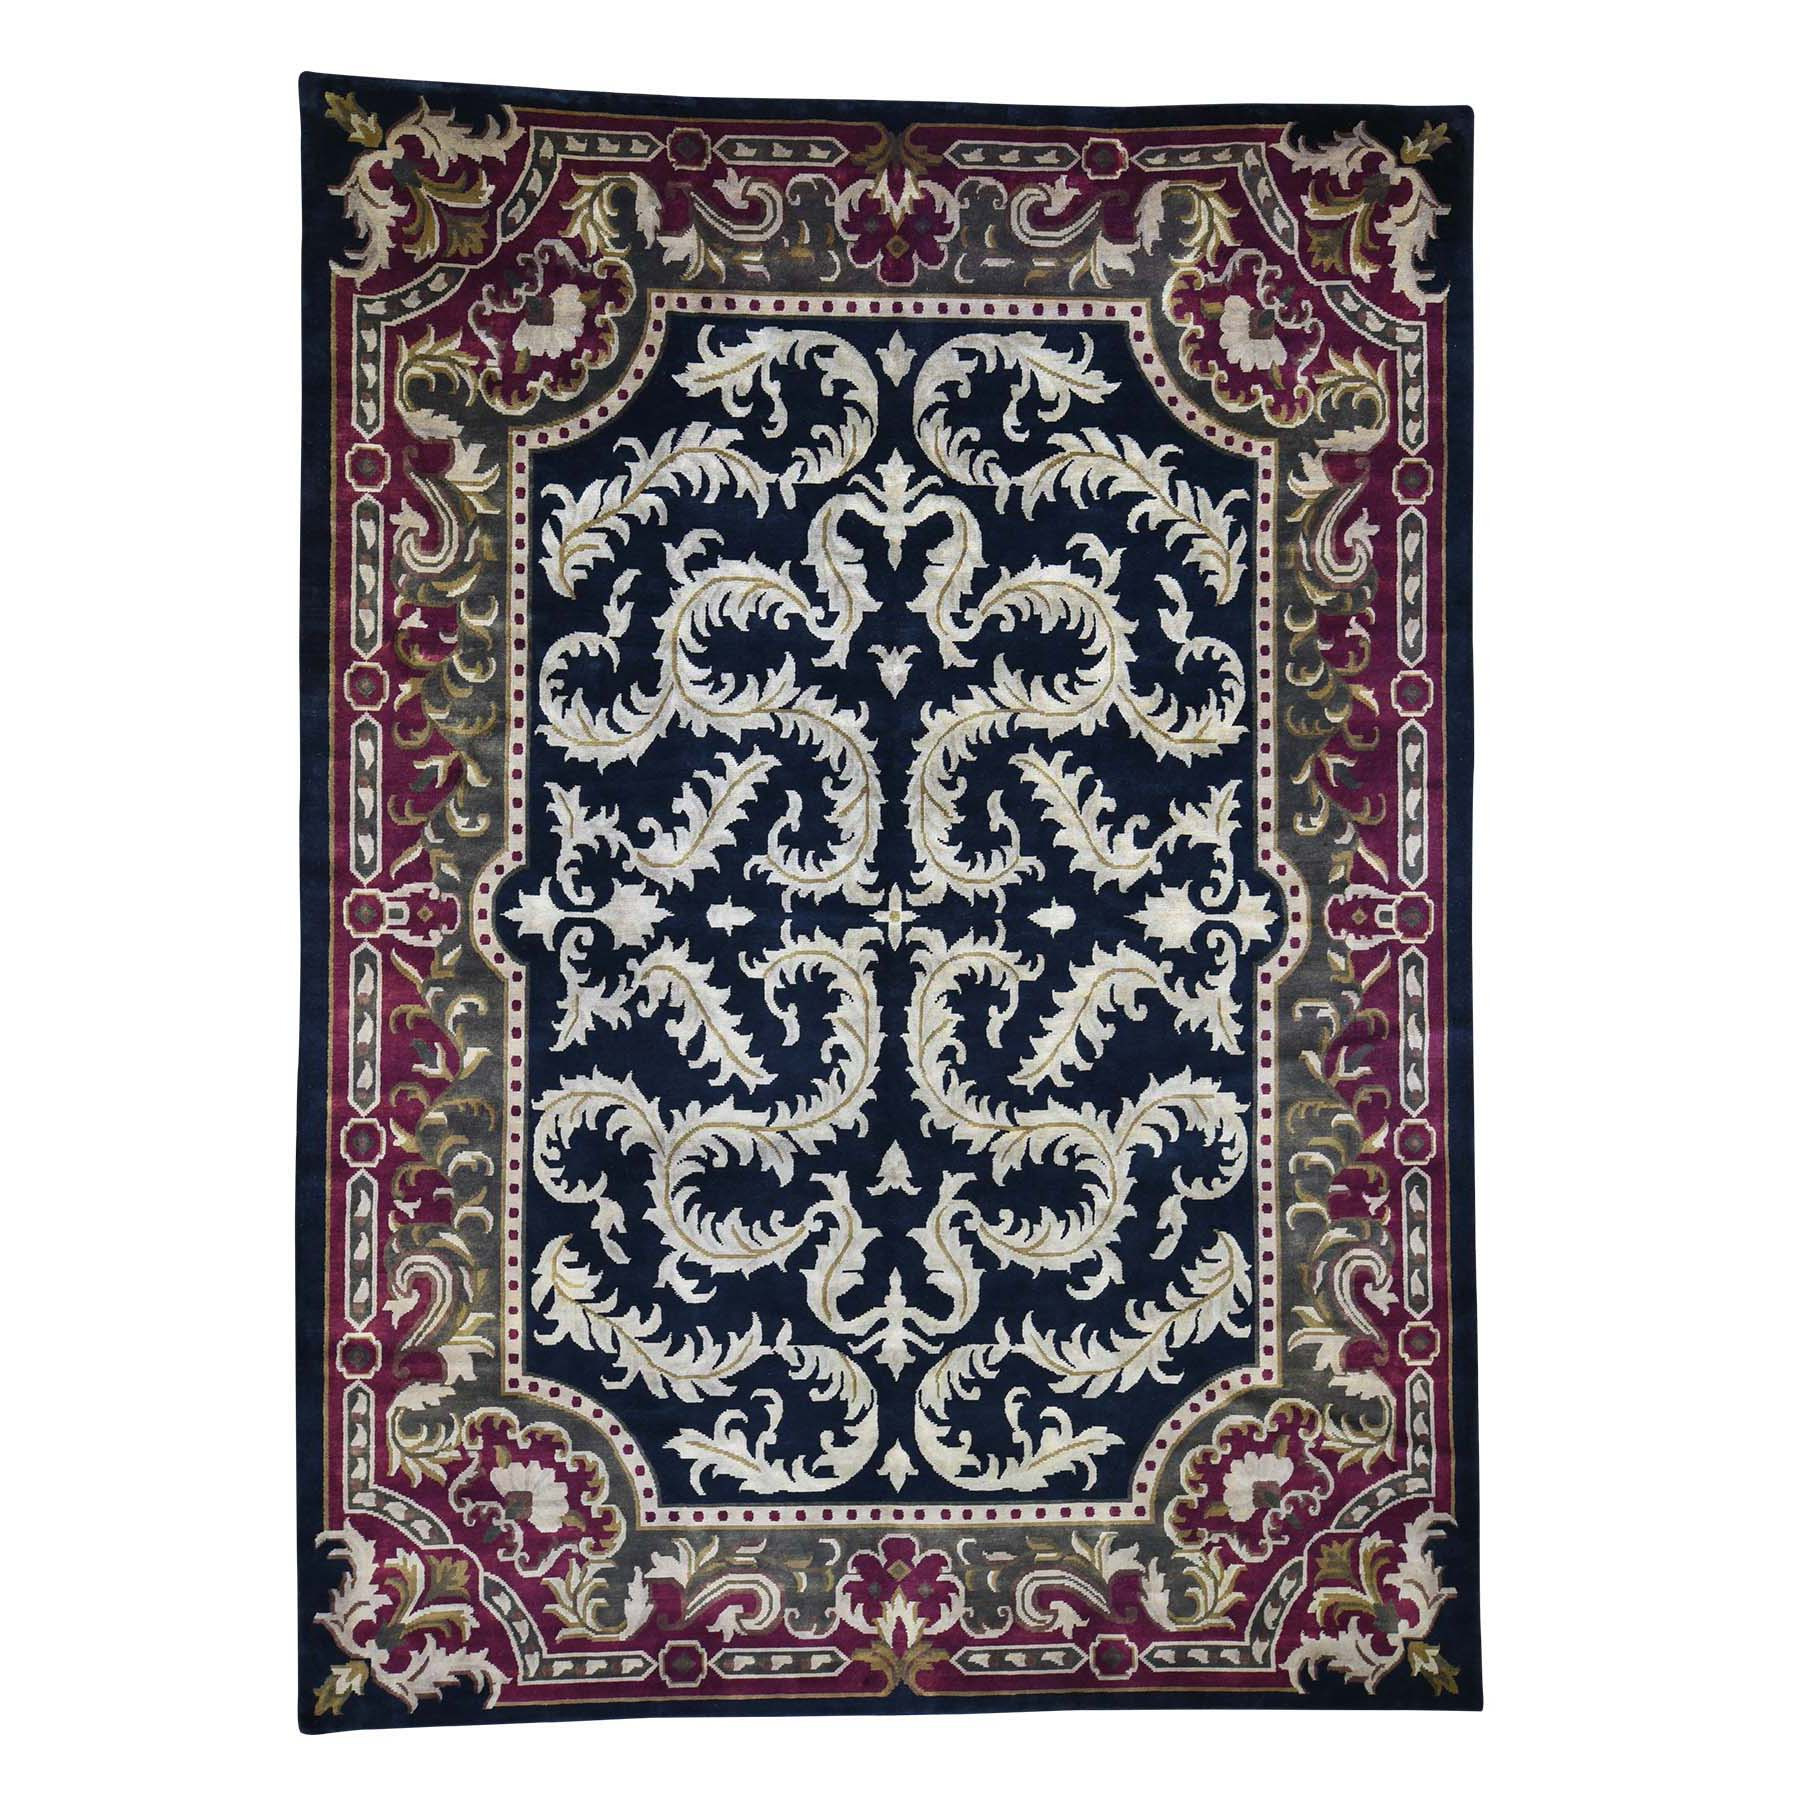 Deep discounted Collection Hand Knotted Black Rug No: 0192996